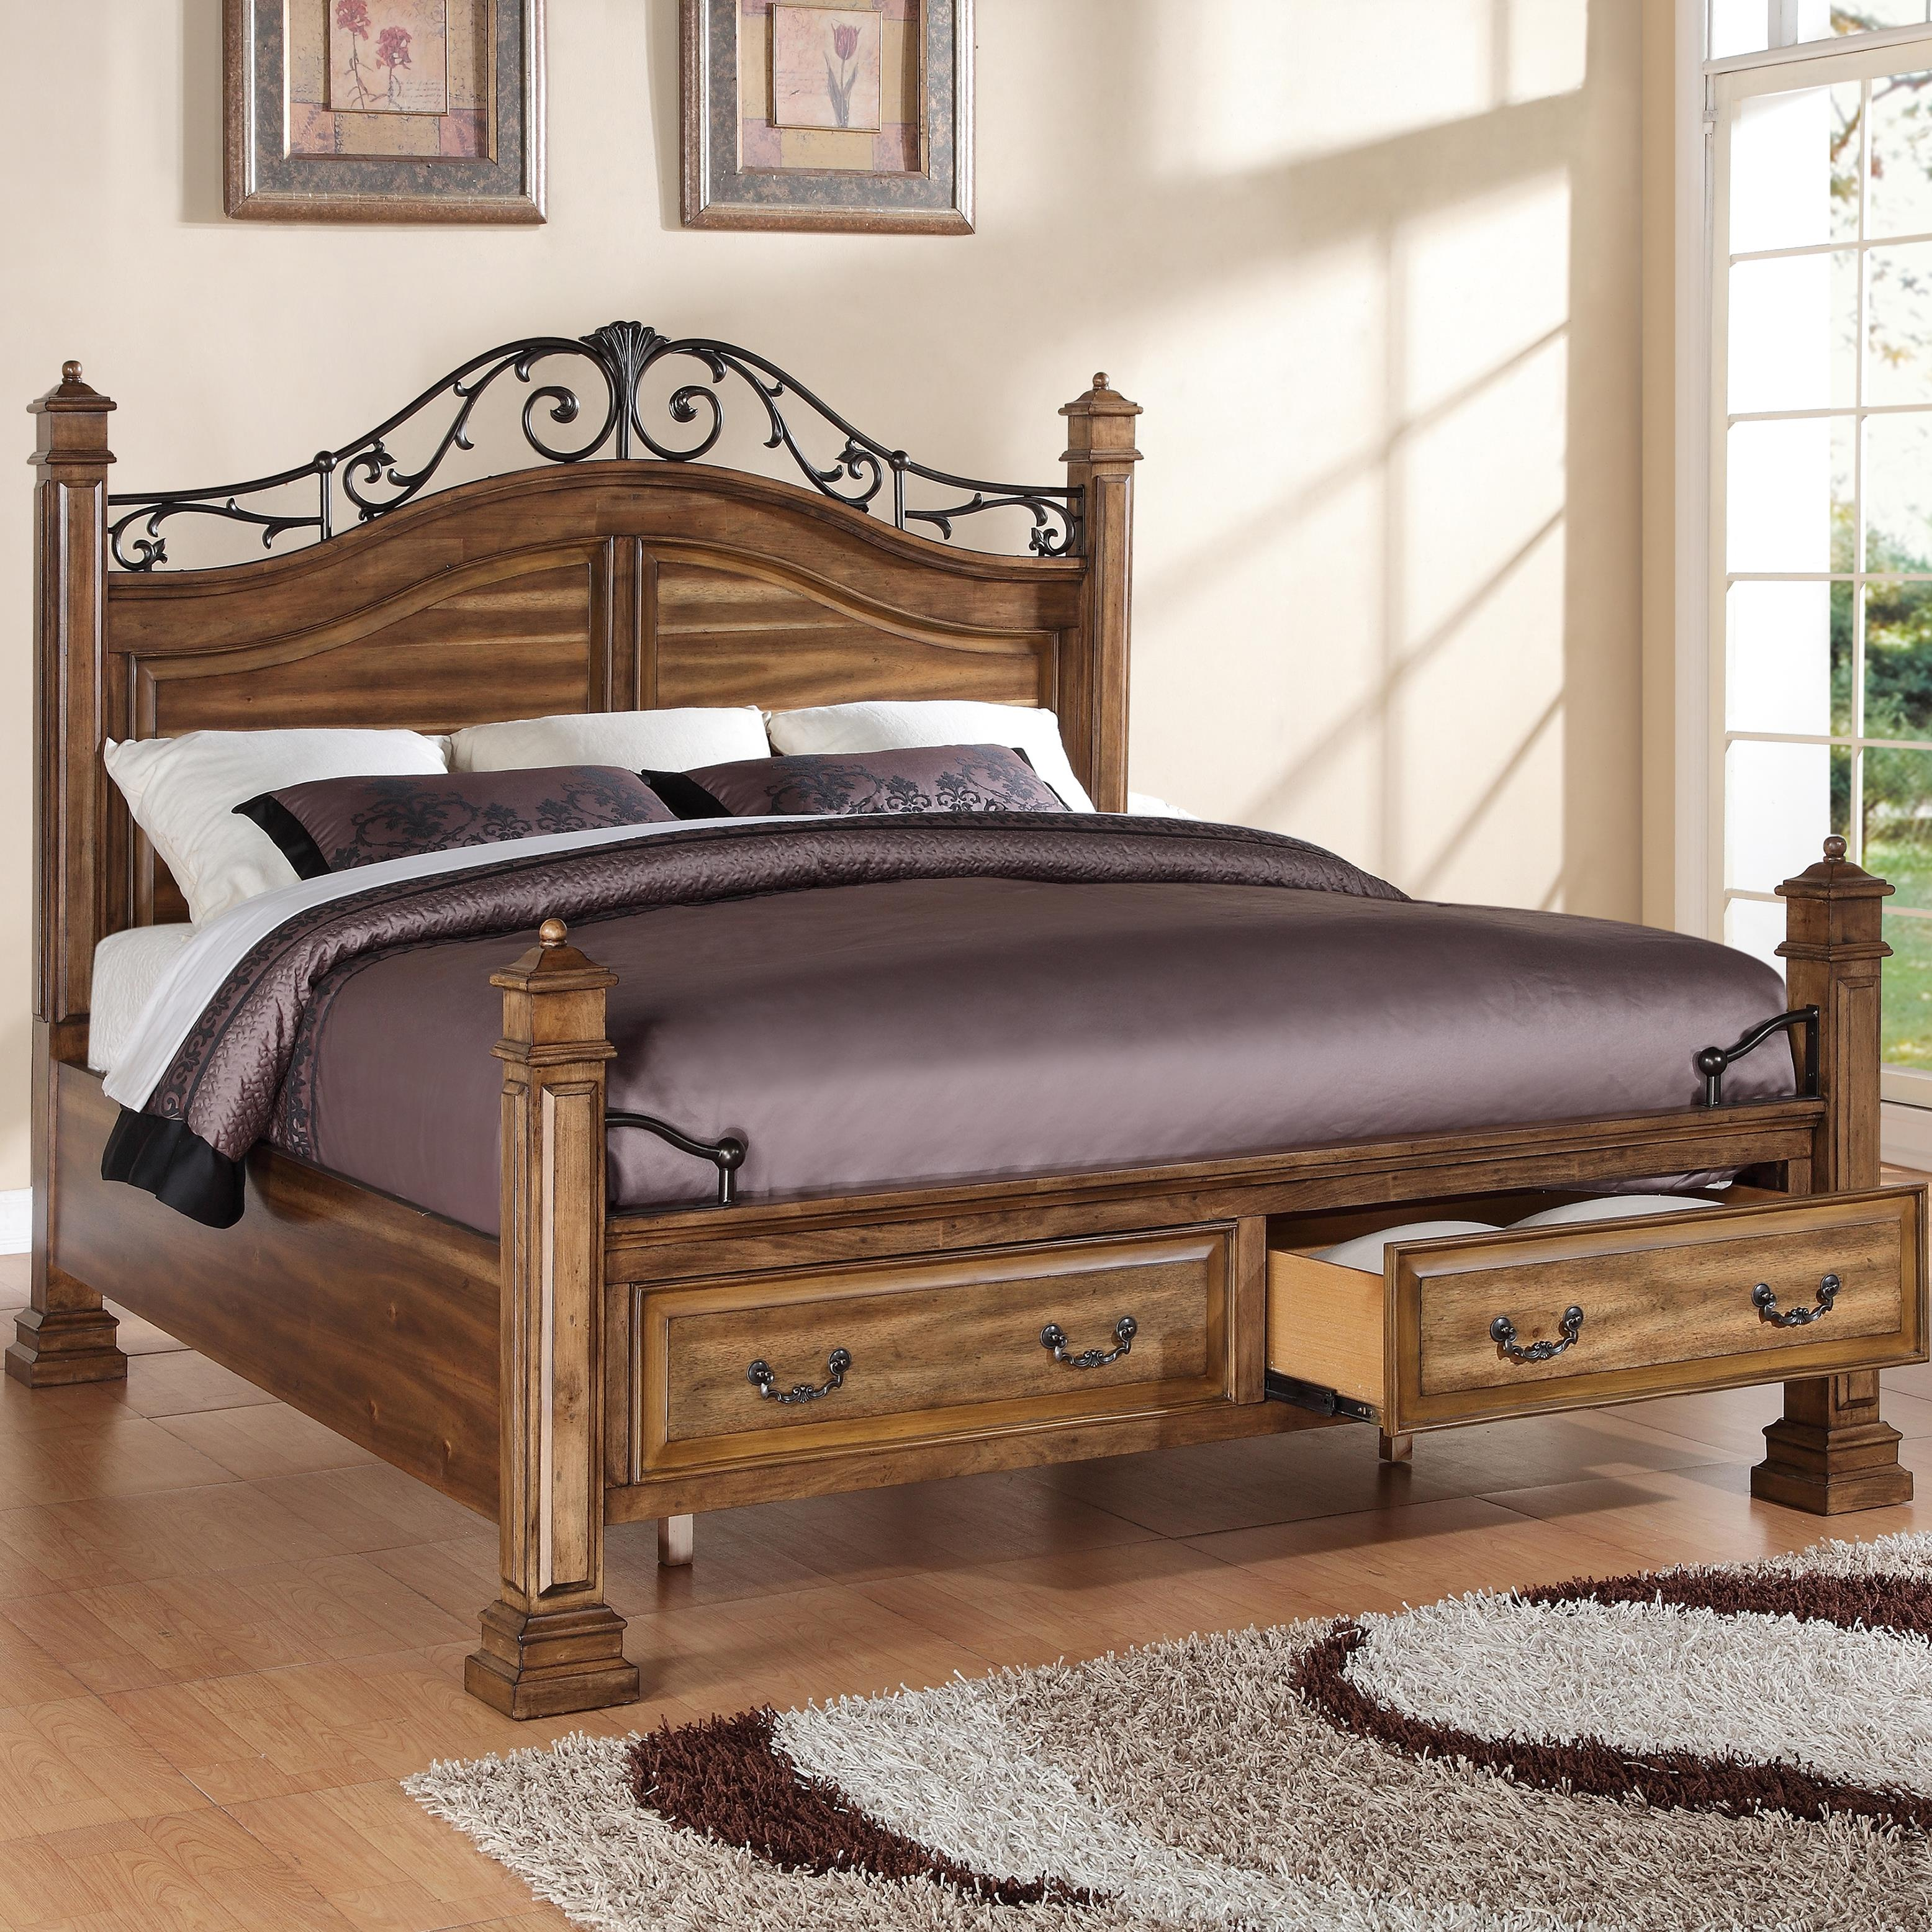 Legends Furniture Barclay King Storage Bed - Item Number: ZBCL-7004+7009+7010